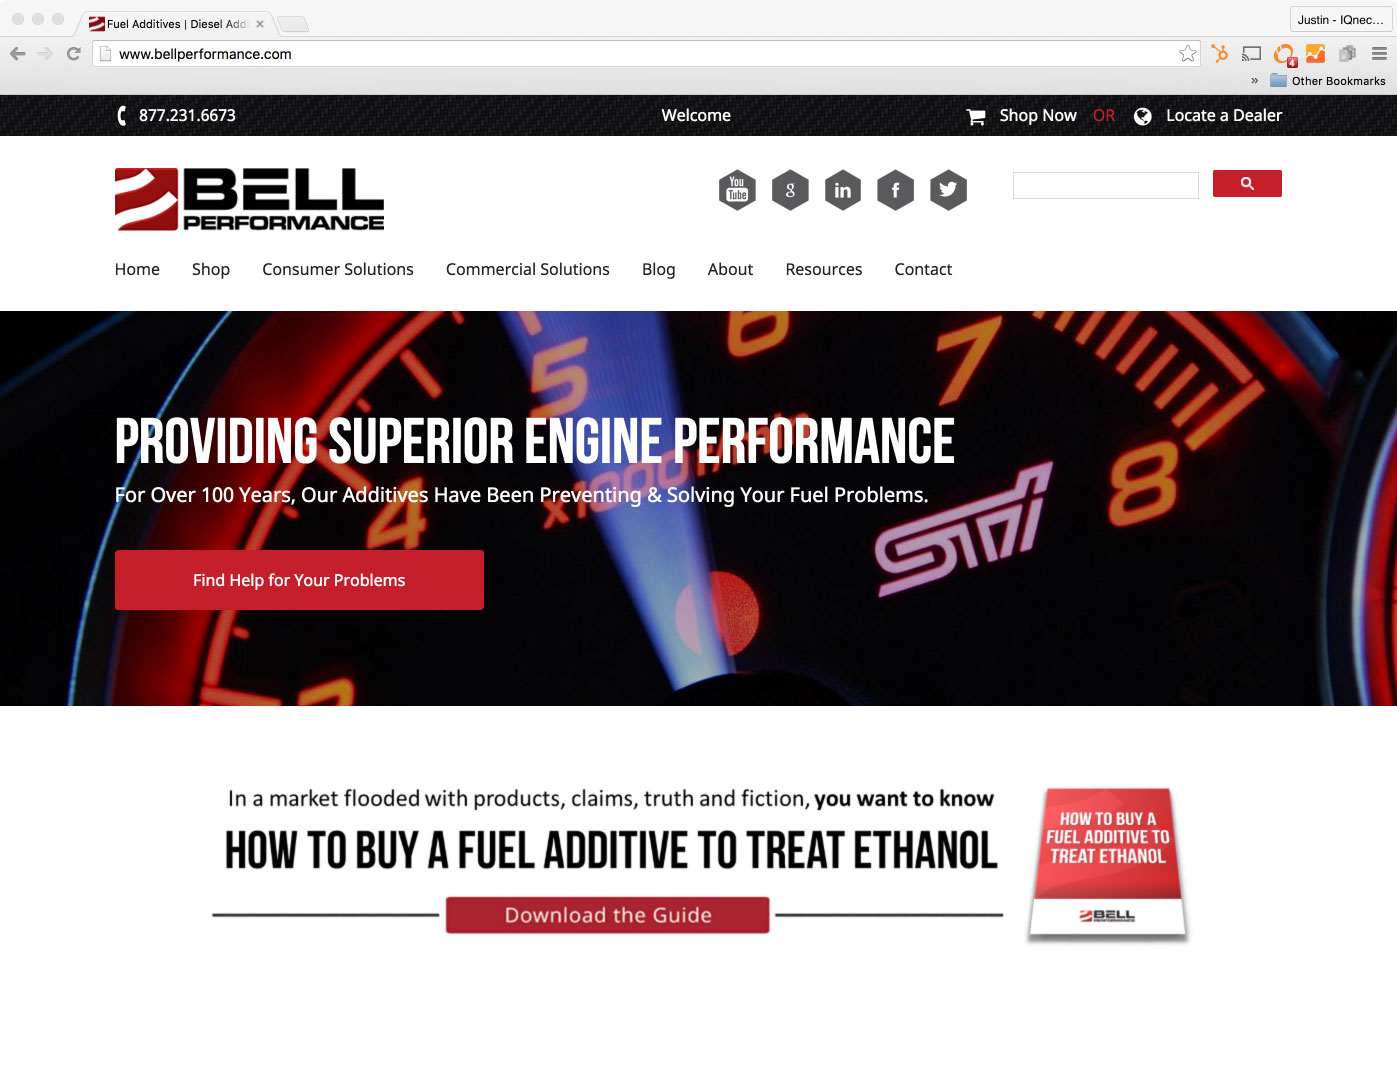 Inbound Marketing for B2B - Bell Performance Case Study